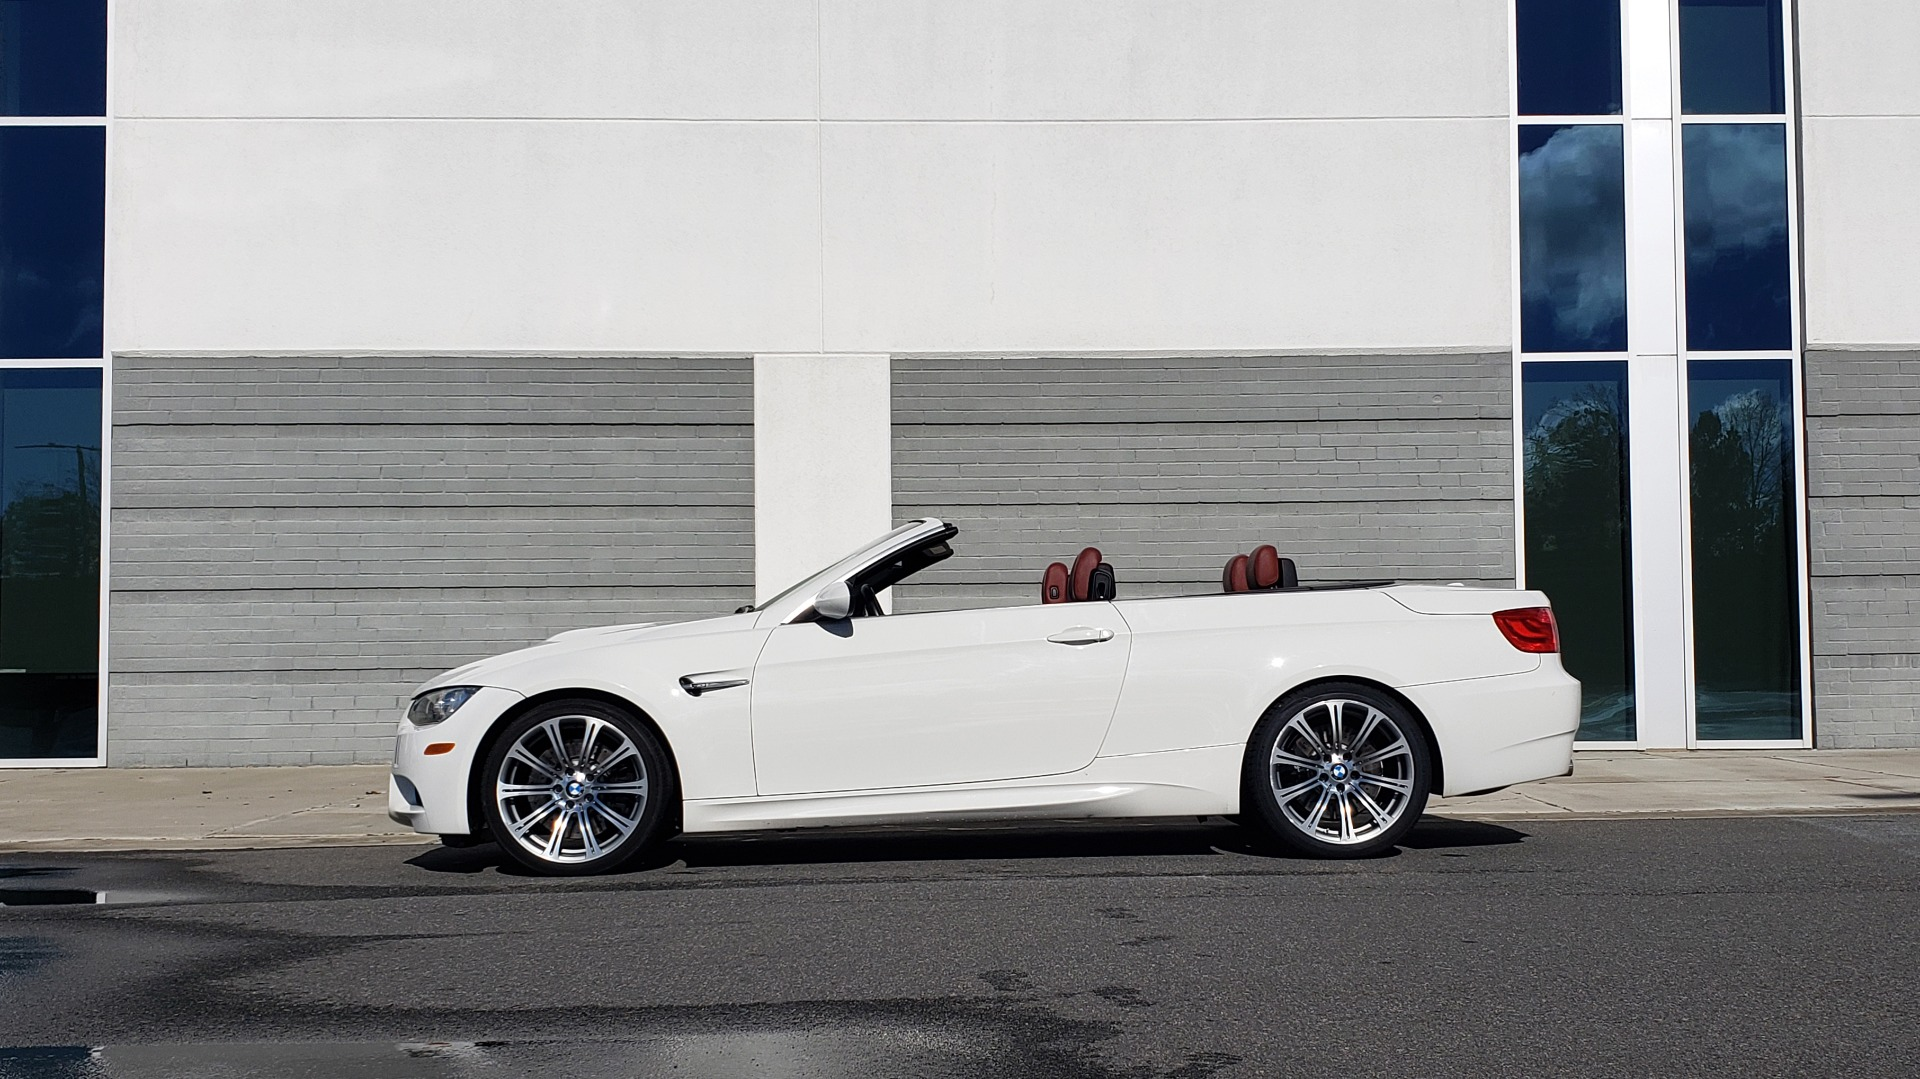 Used 2012 BMW M3 CONVERTIBLE / PREM PKG / NAV / M-DOUBLE CLUTCH AUTOMATIC for sale Sold at Formula Imports in Charlotte NC 28227 16